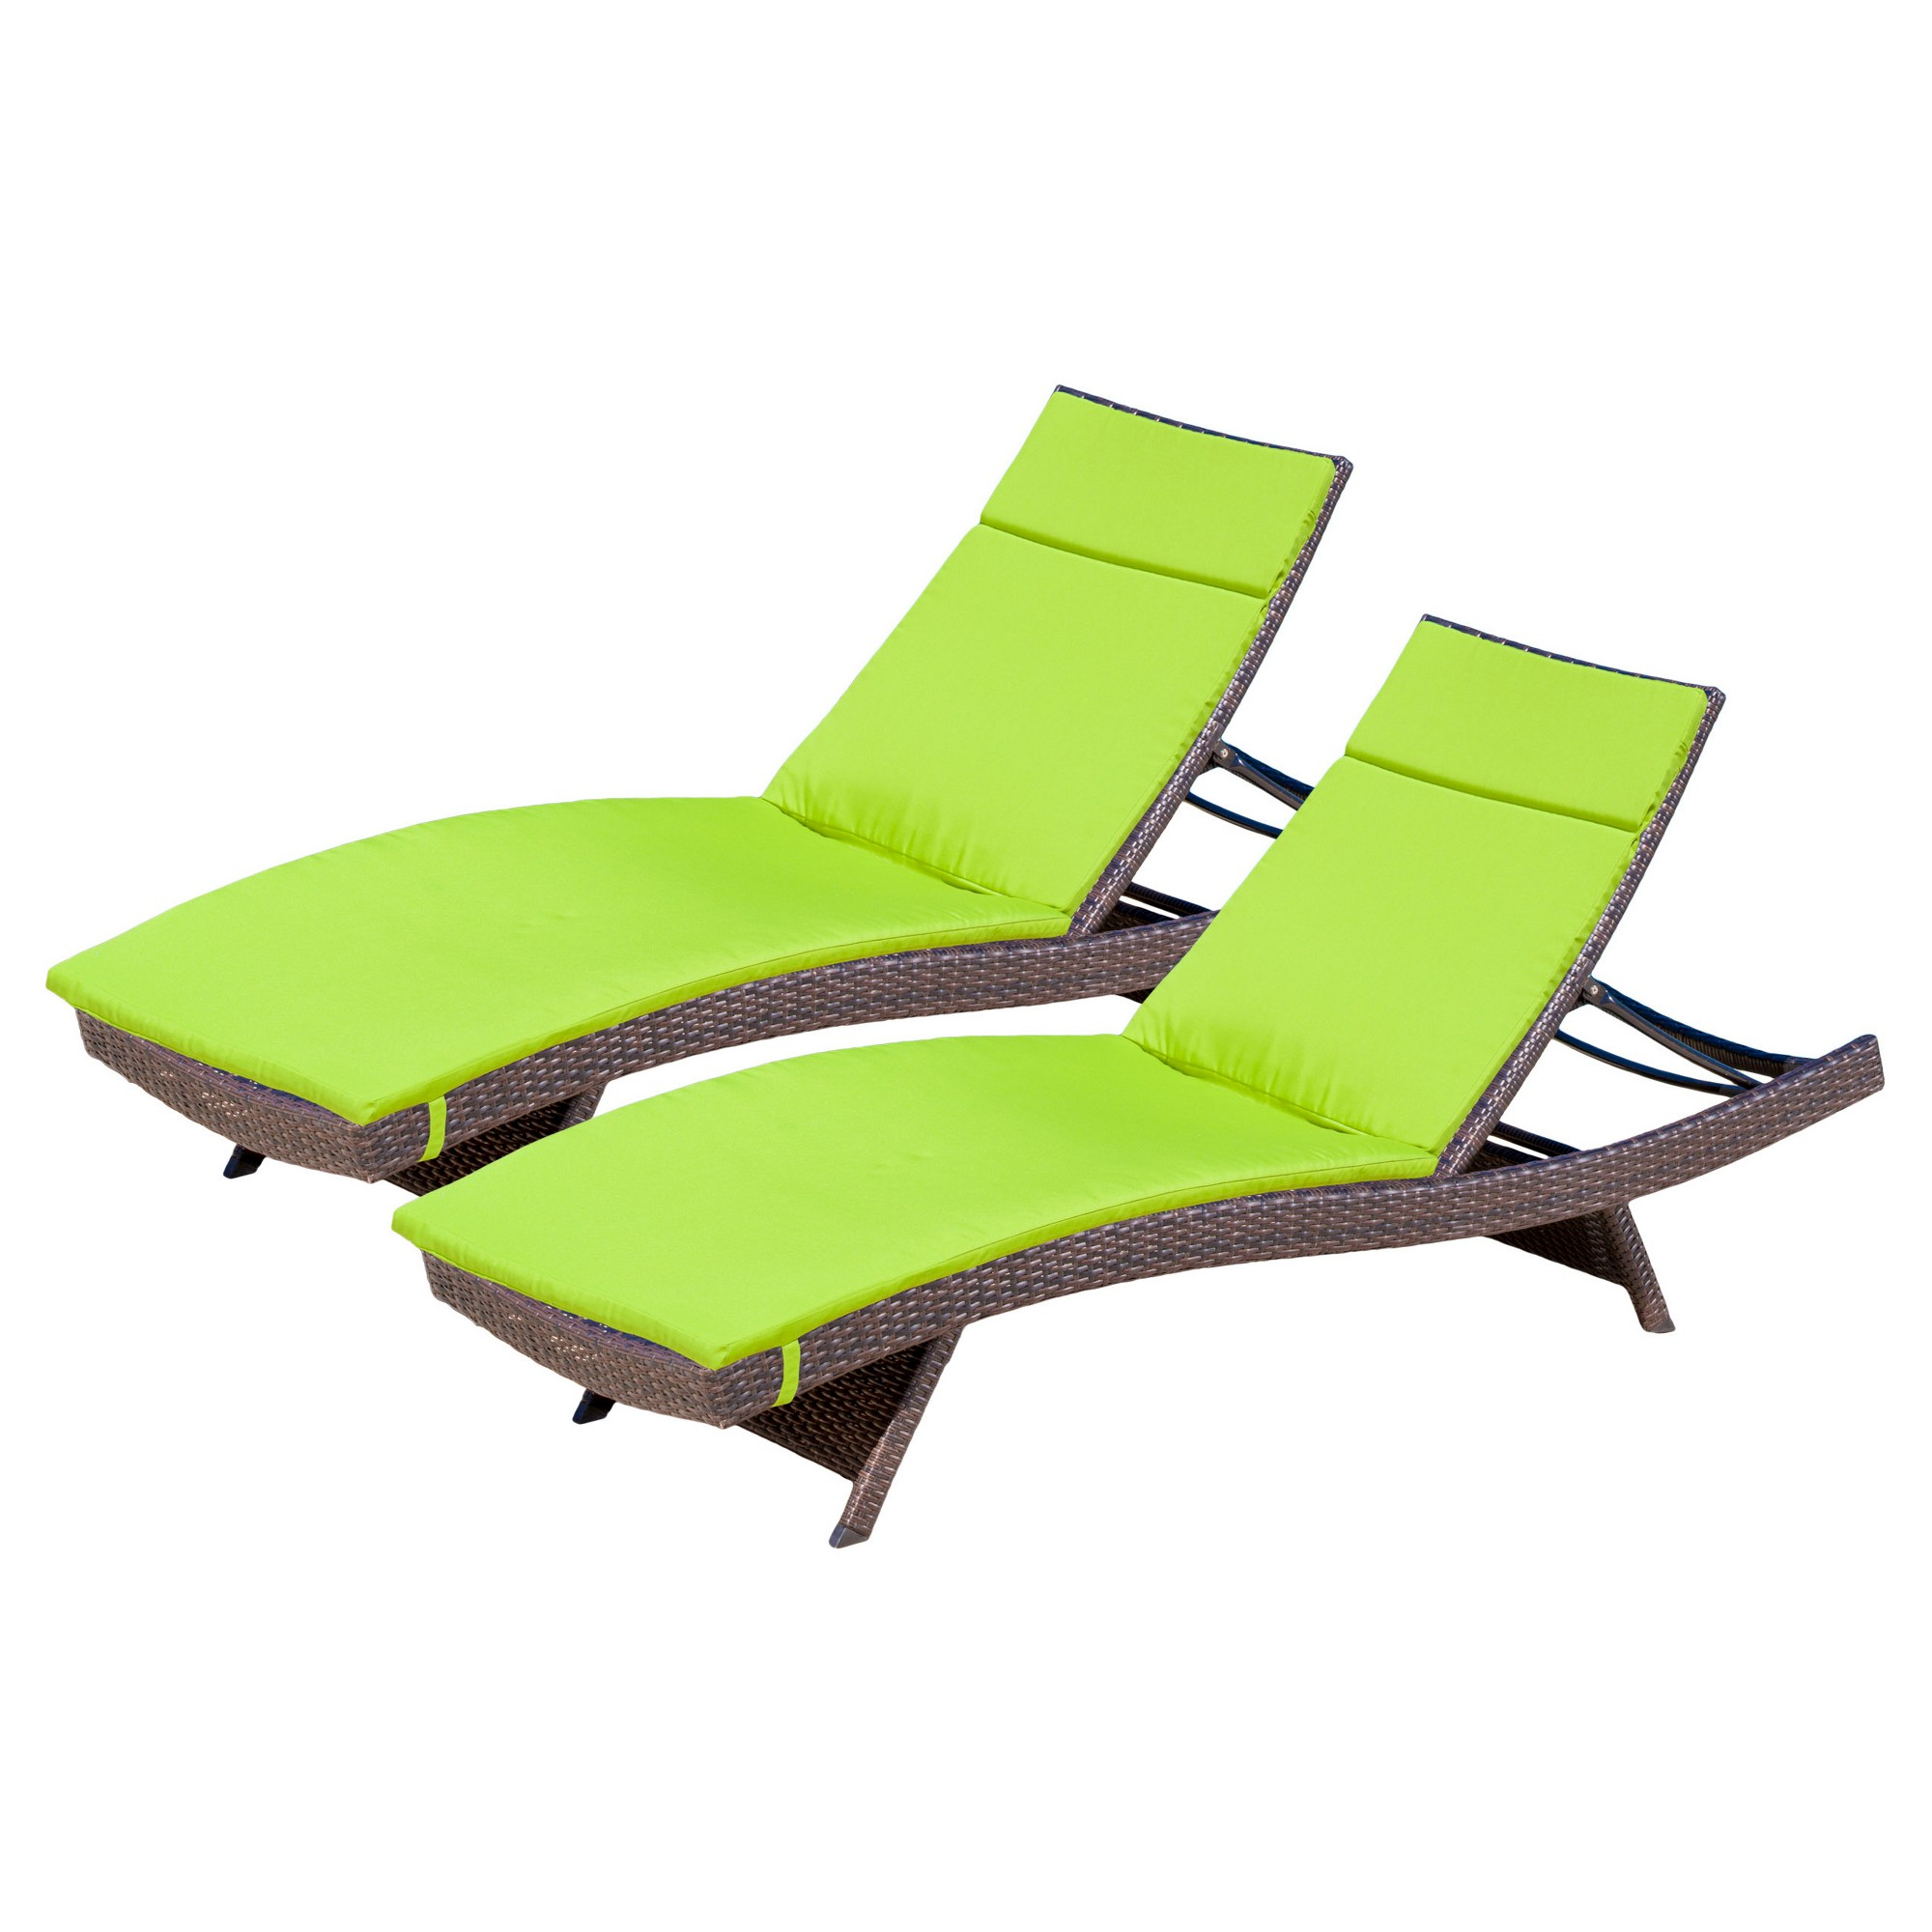 Most Recently Released Salem Set Of 2 Brown Wicker Adjustable Chaise Lounge – Green For Outdoor Wicker Adjustable Chaise Lounges With Cushions (View 12 of 25)